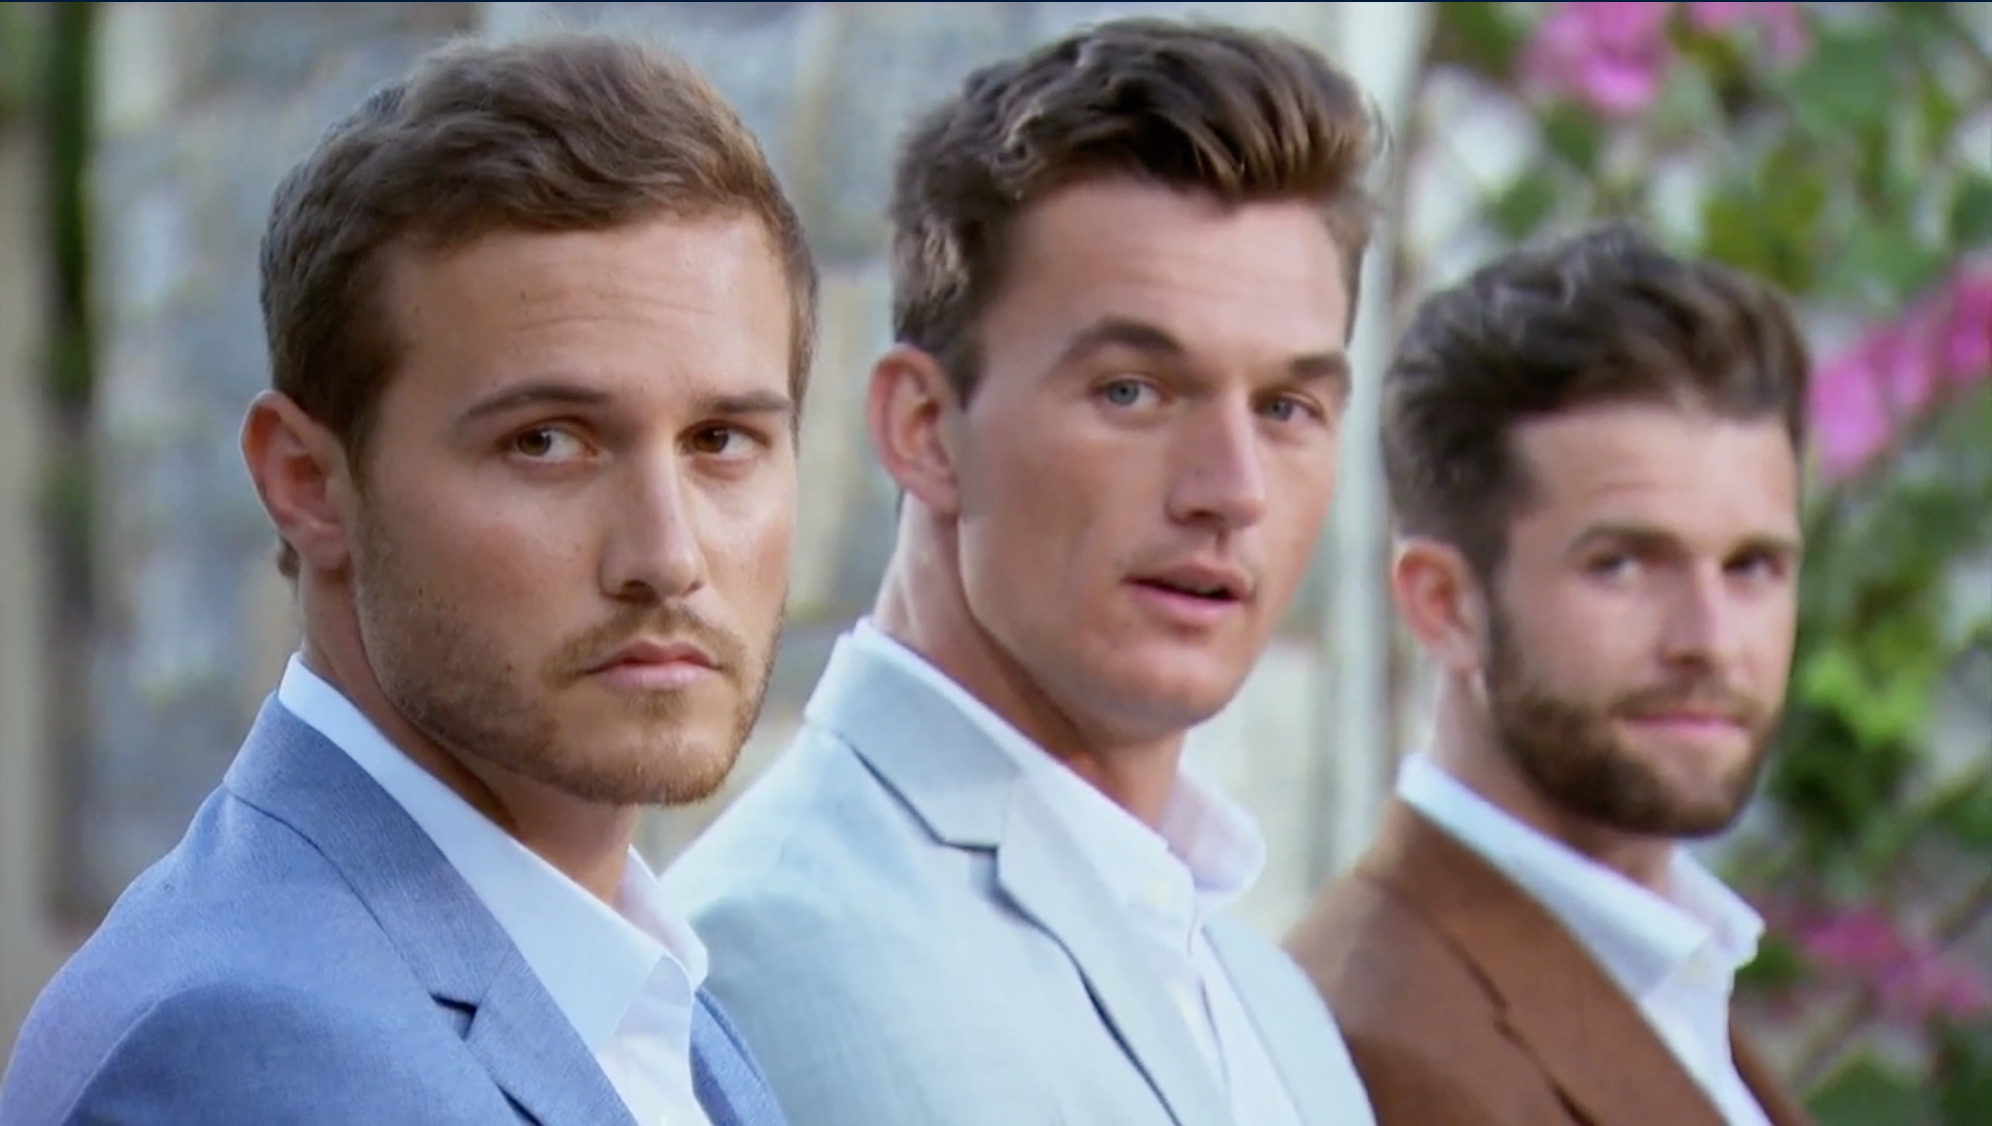 Here's Everything We Know About the Hot Mess That Will Be 'The Bachelorette' Finale